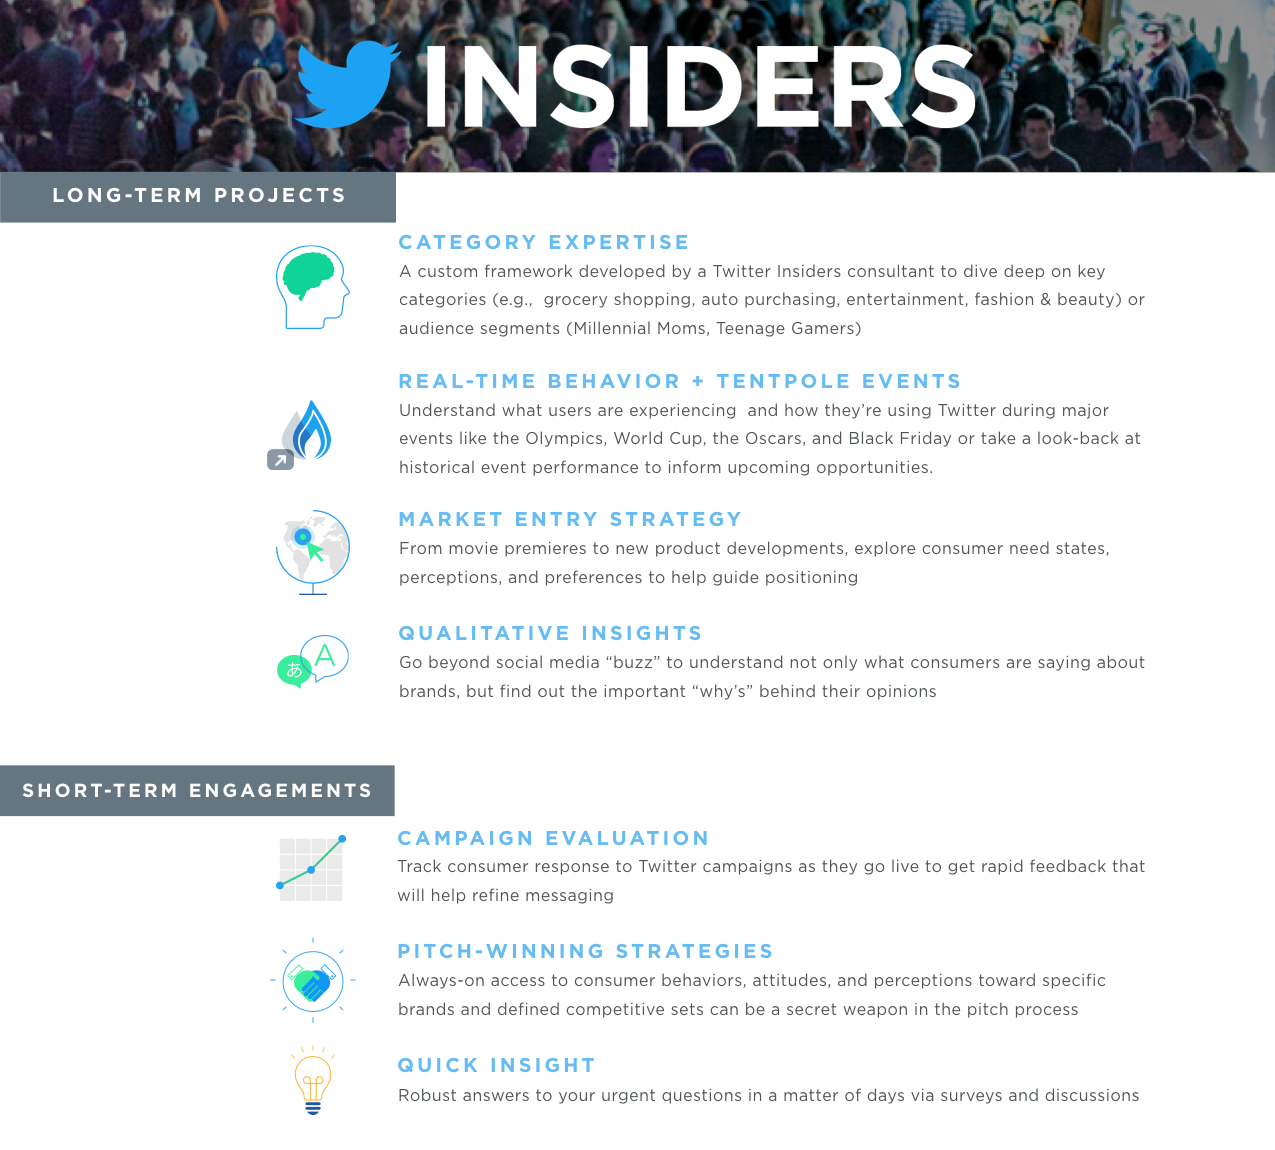 TwitterInsiders_Blog_Infographic.001 Facebook Ads Manager, Twitter Insiders, and Snapchat Discover: Your Digital Marketing Weekly Roundup